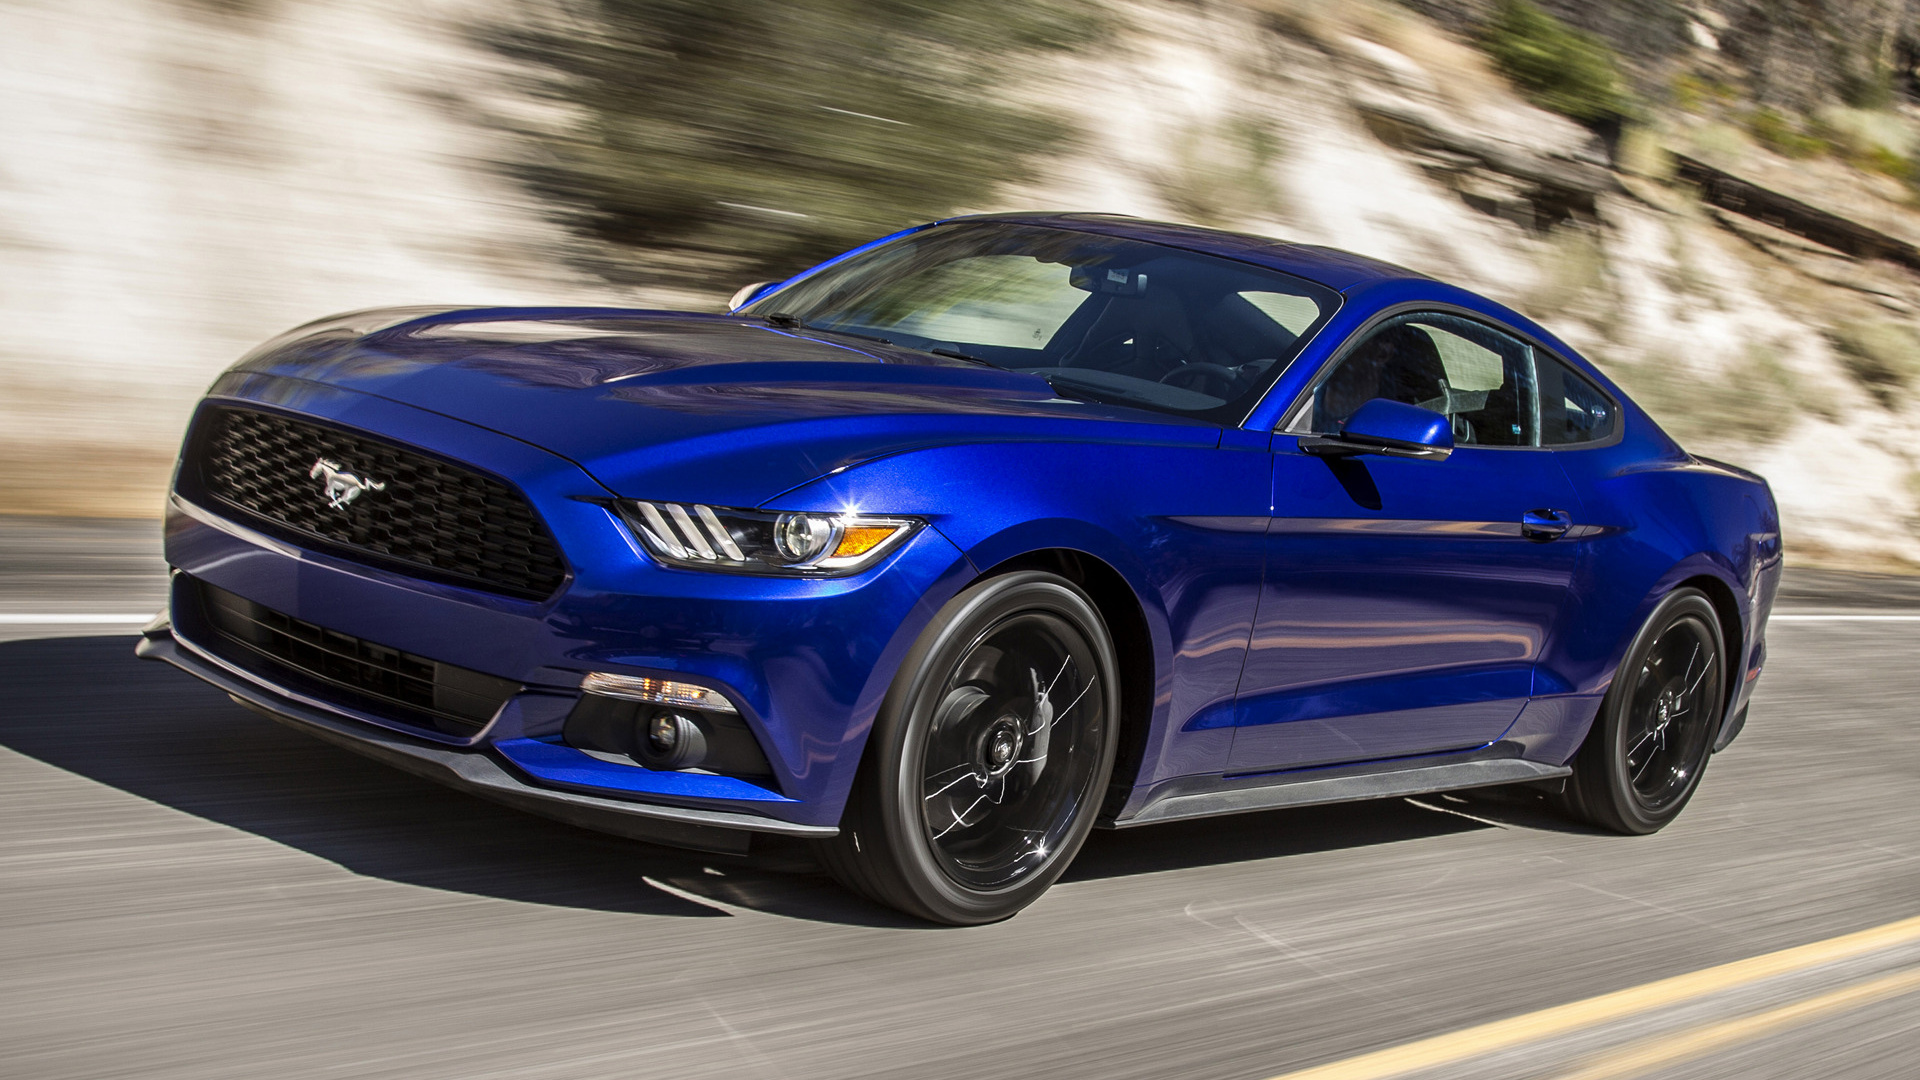 Ford Mustang EcoBoost (2015) Wallpapers and HD Images ...